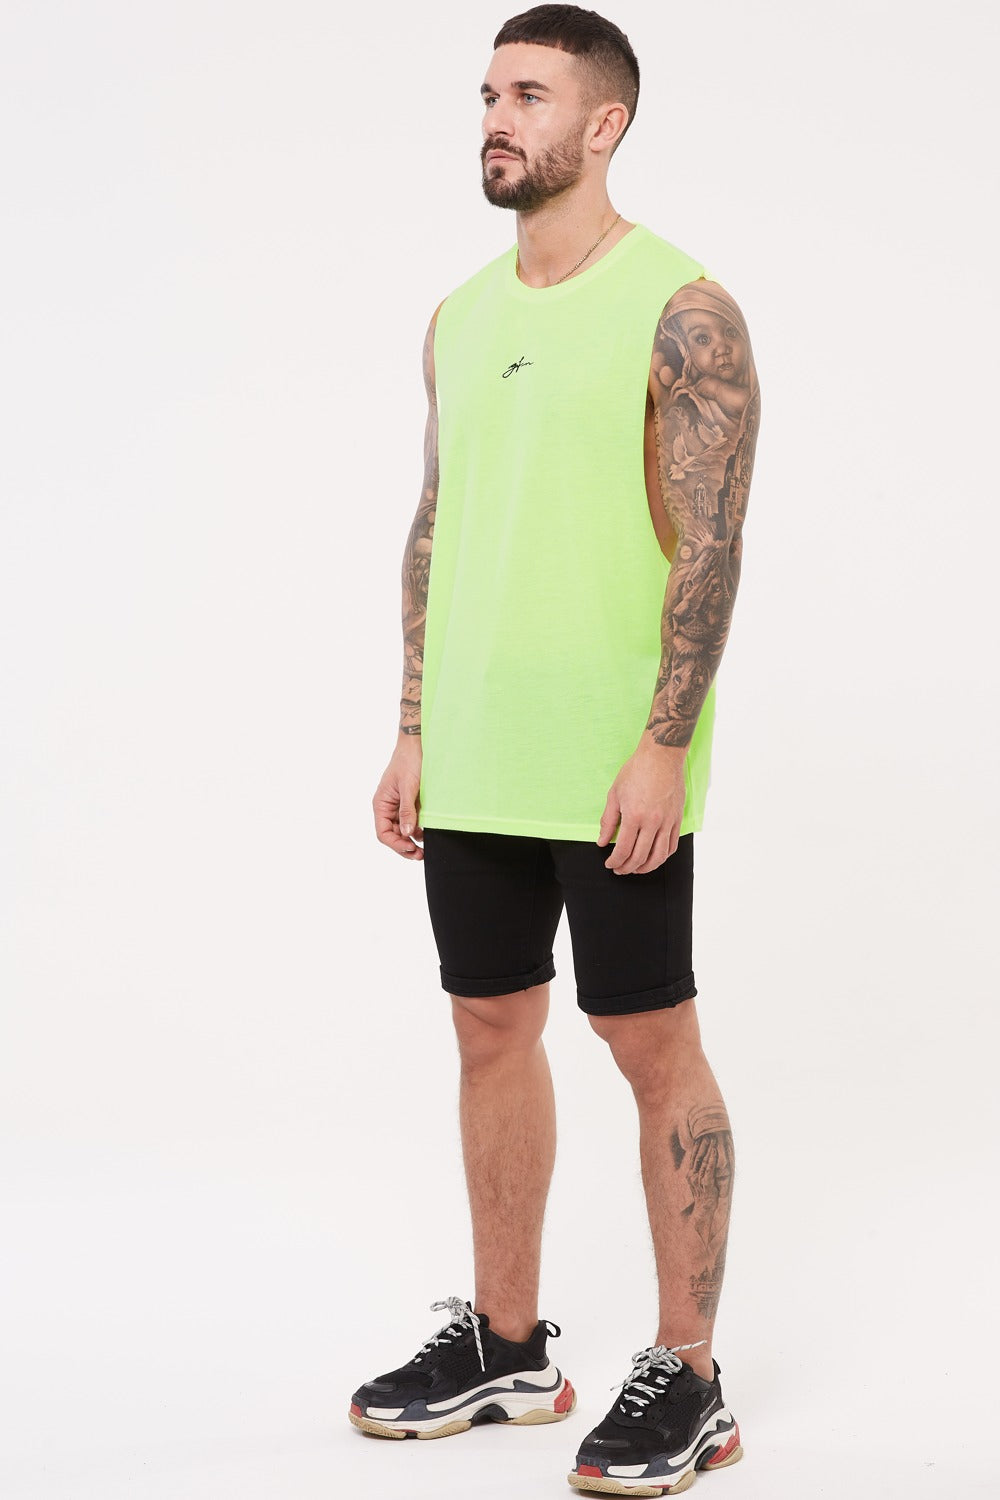 Good For Nothing Future Cut Away Vest - Neon Green - 1